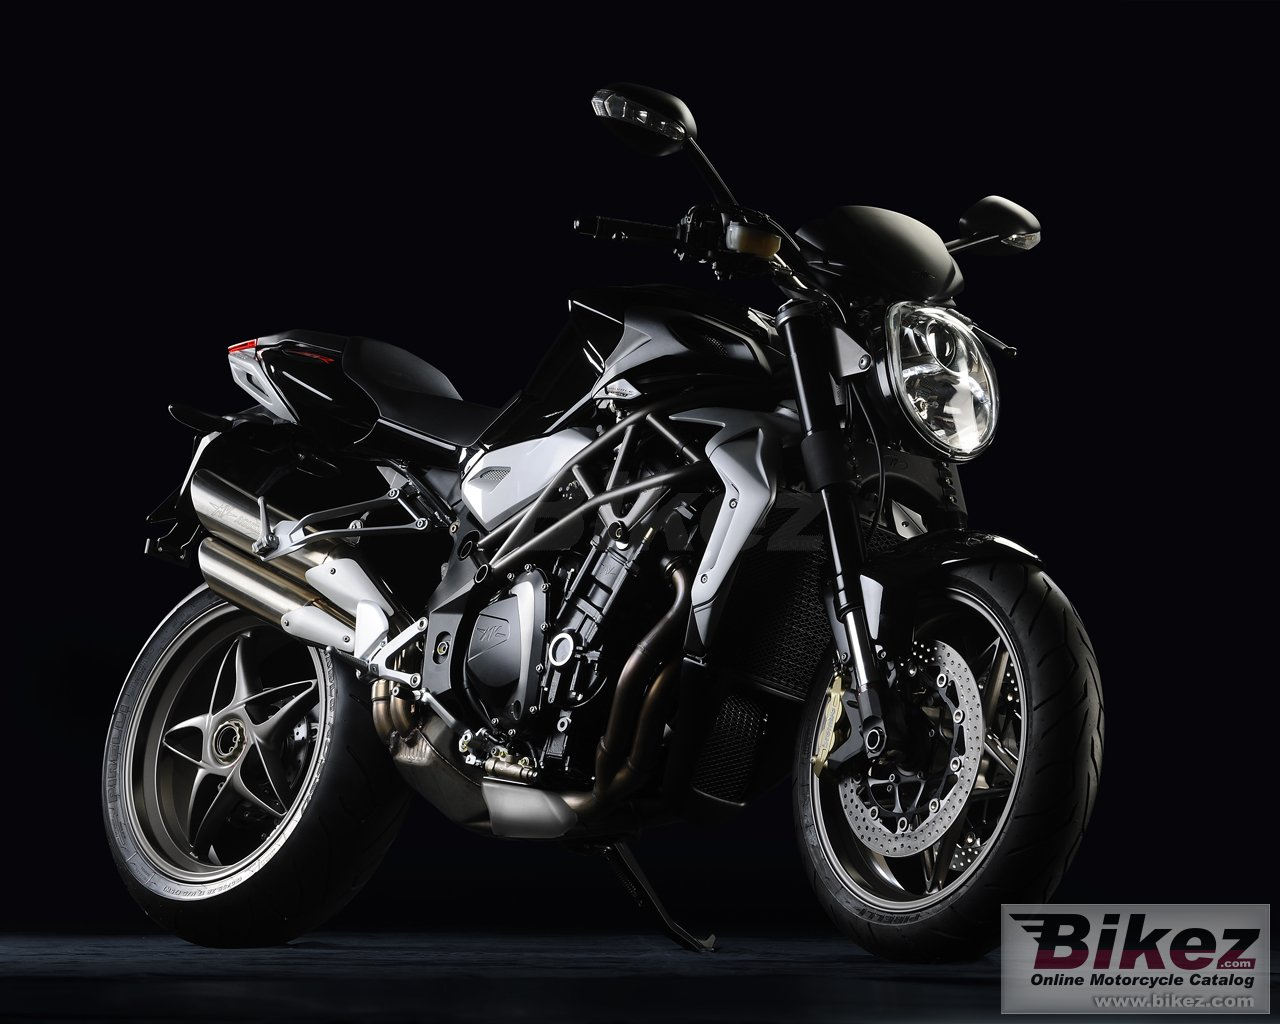 Big MV Agusta brutale 990r picture and wallpaper from Bikez.com